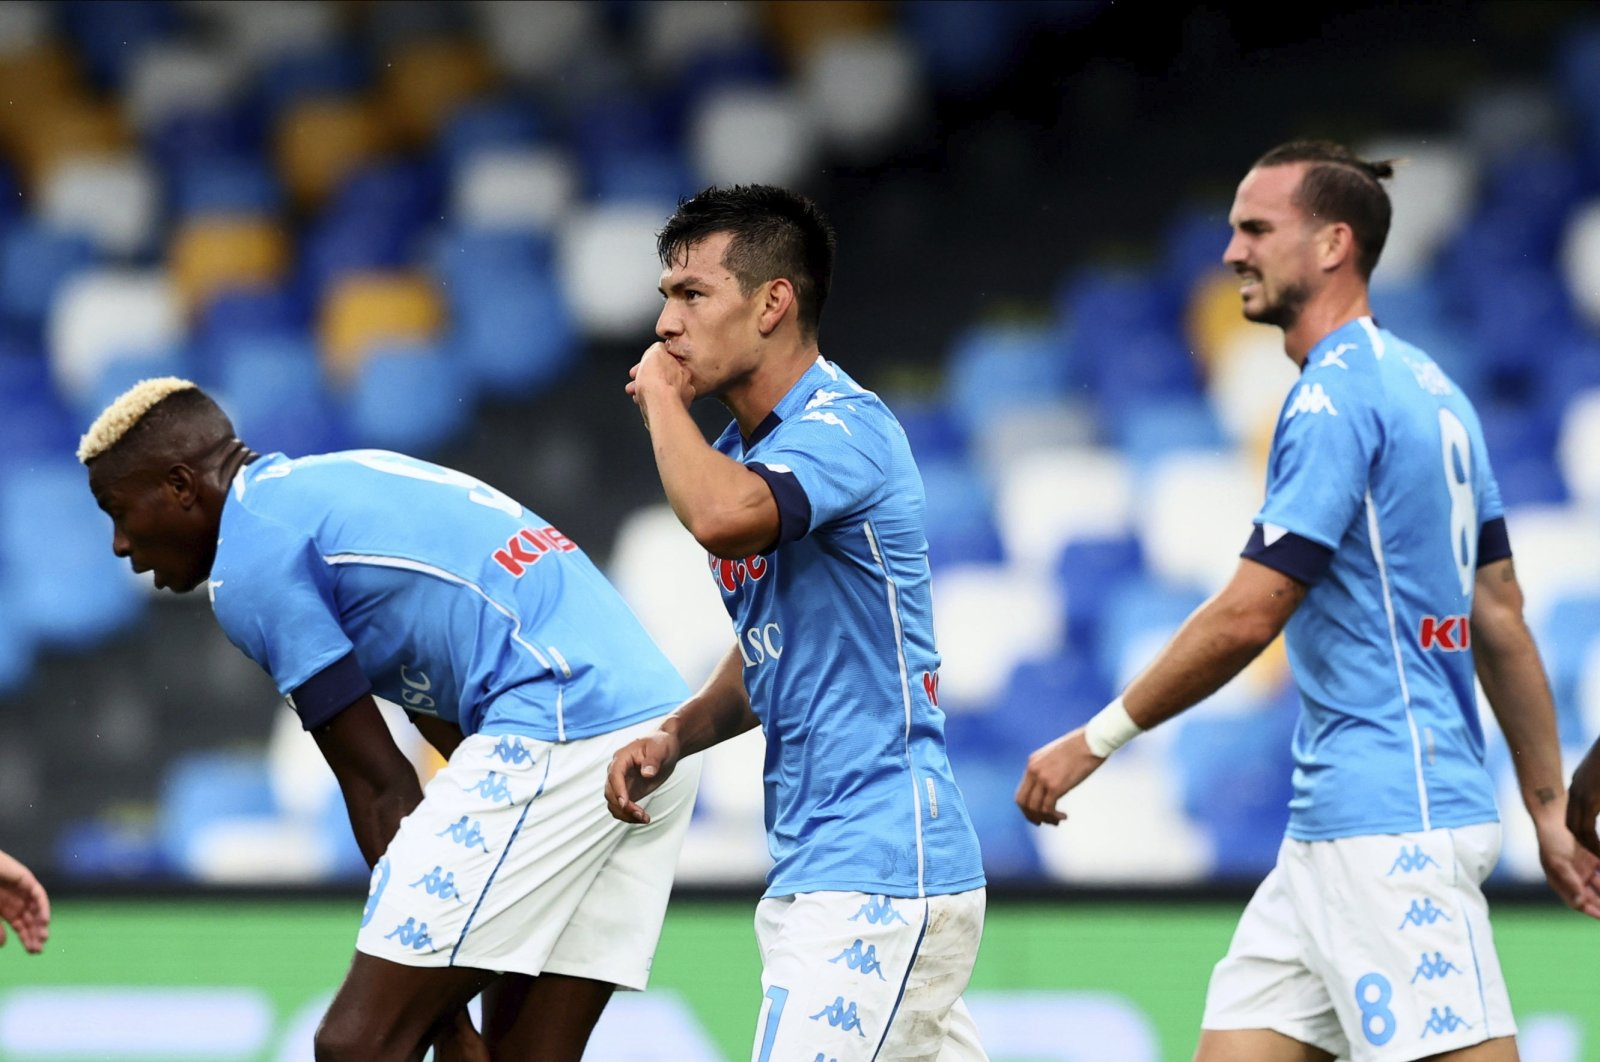 Napoli players celebrate a goal during a Serie A match against Genoa, in Naples, Italy, Sept. 27, 2020. (AP Photo)